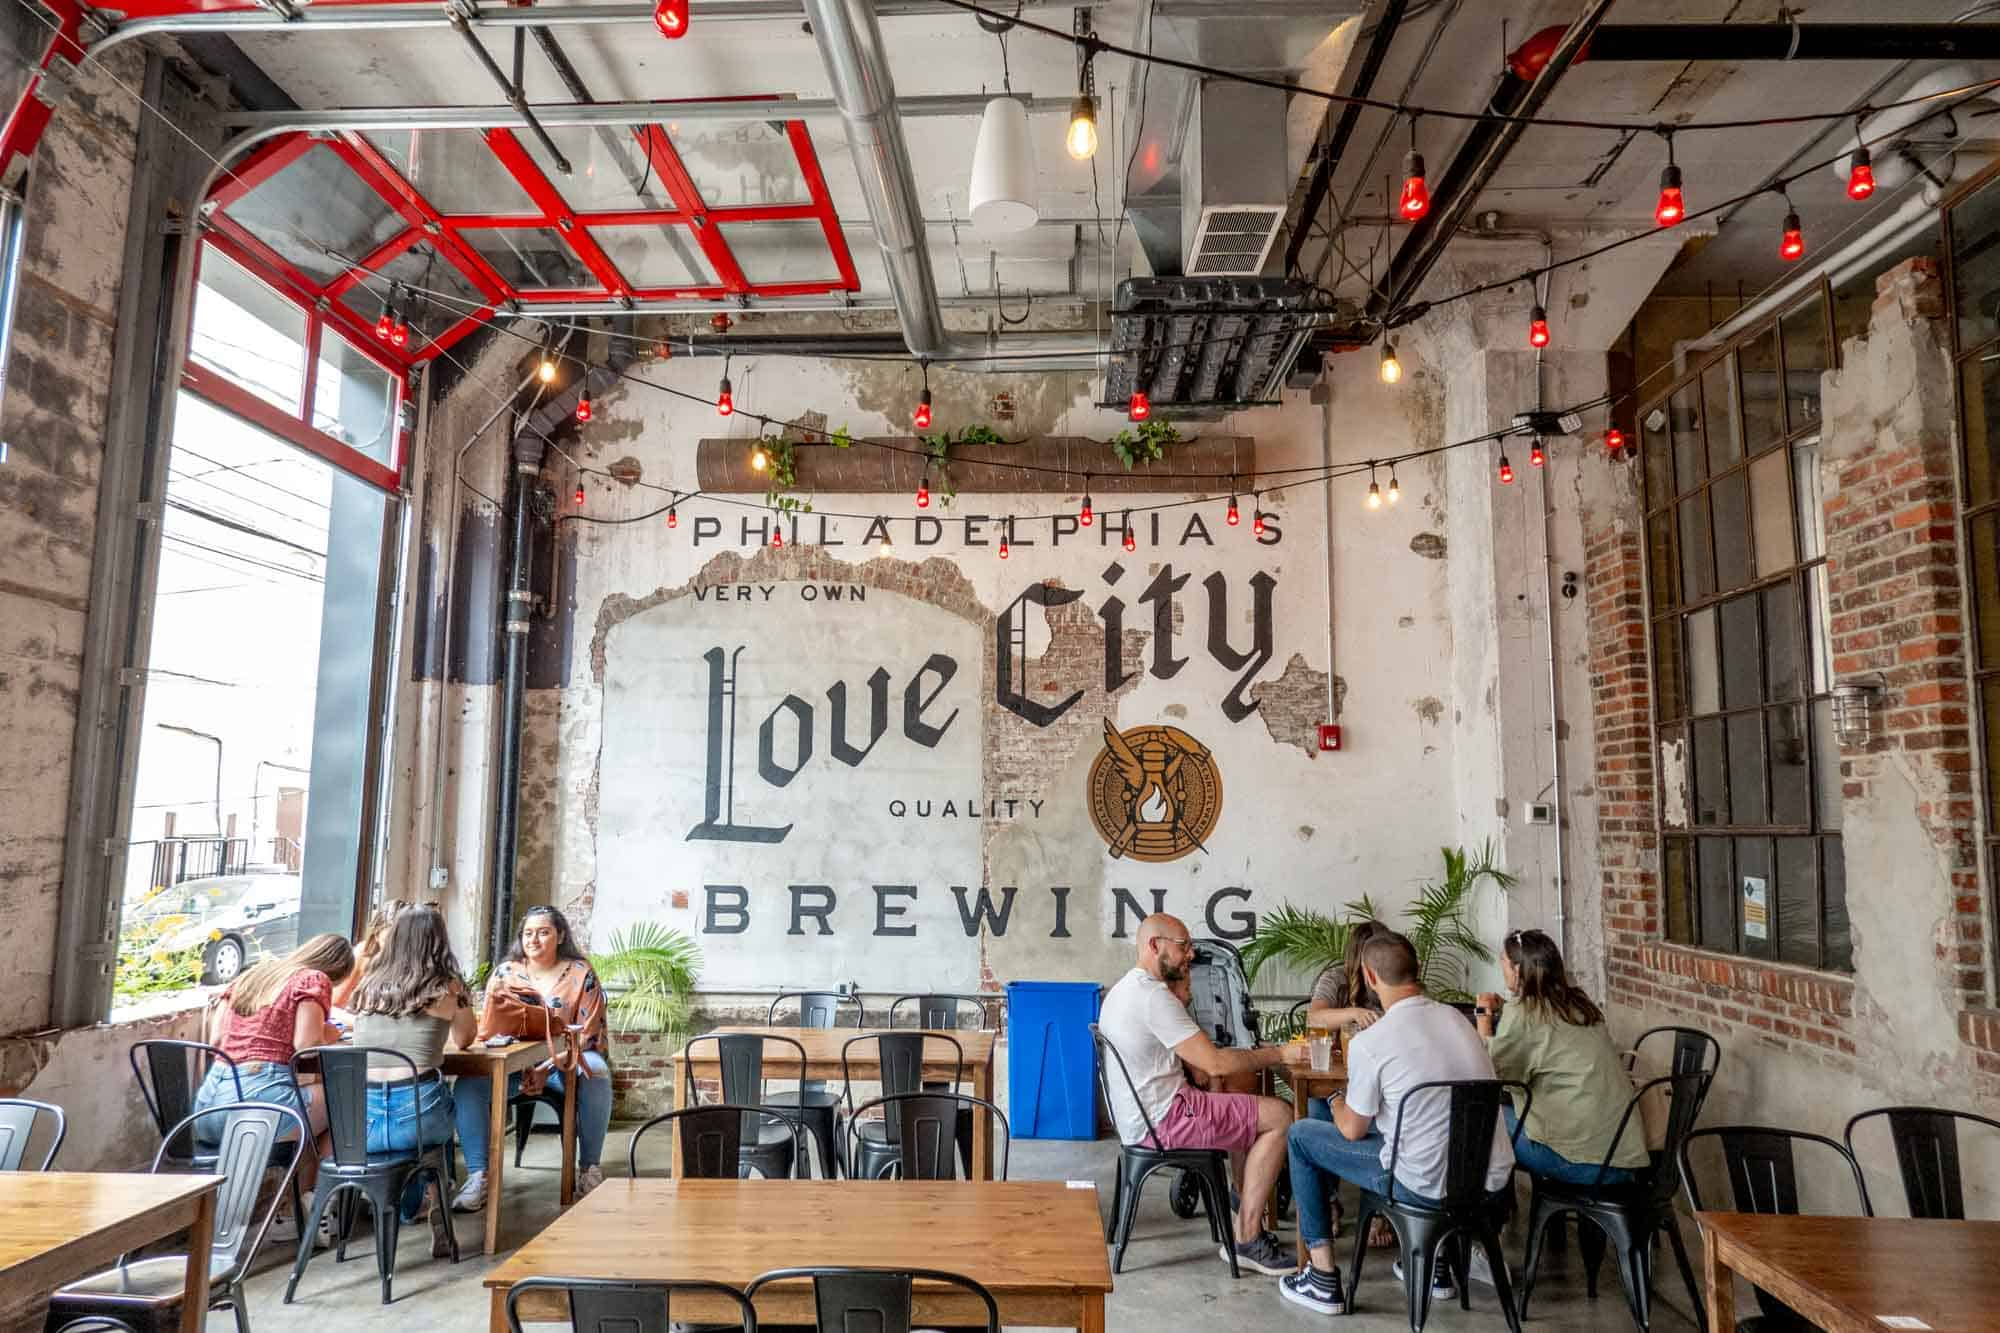 """Mural saying """"Philadelphia's very own Love City quality brewing"""" with people at tables"""